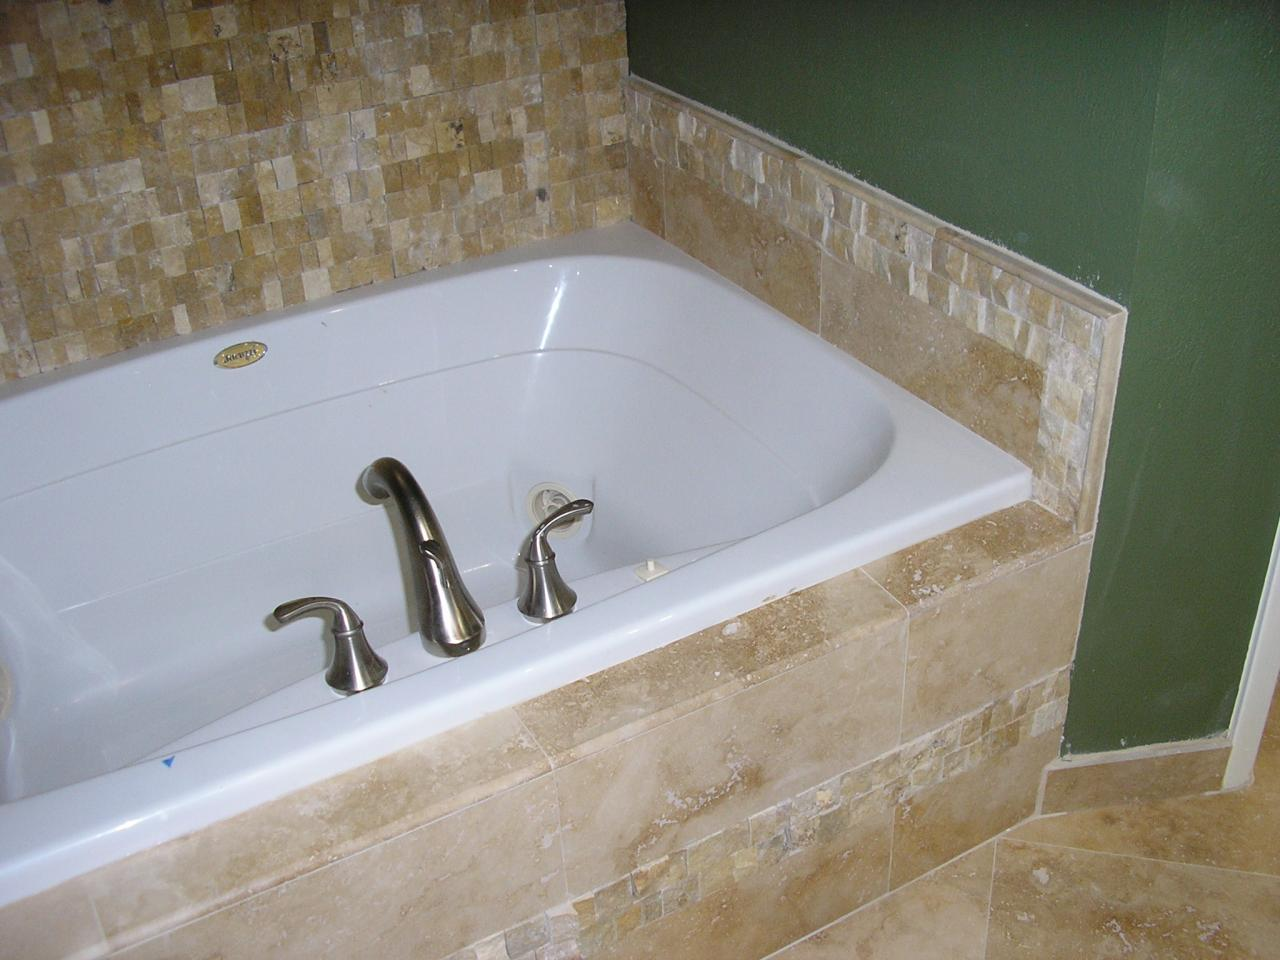 Bathroom 9 - Tub View